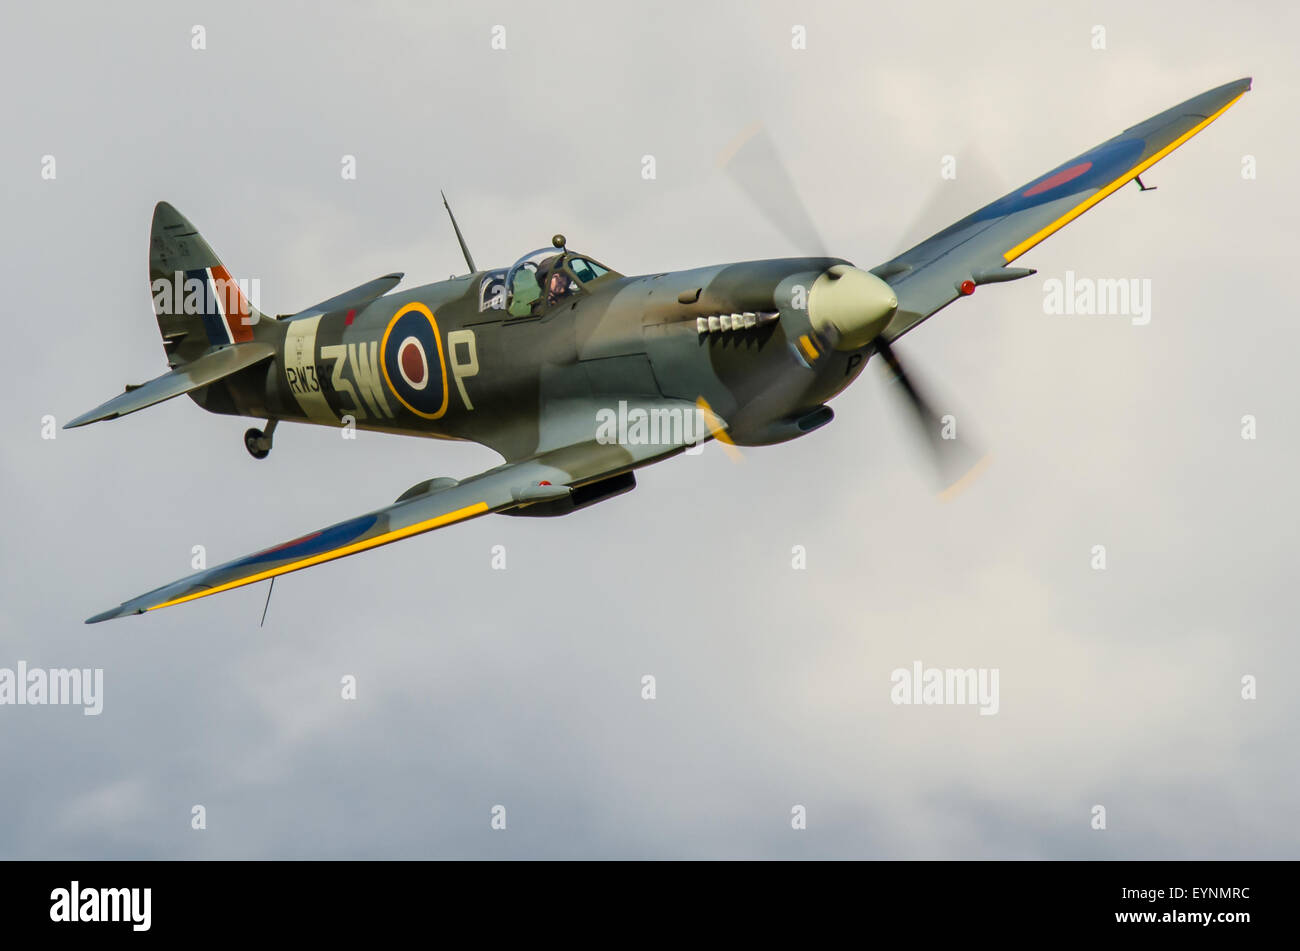 pilot-dan-griffith-flying-spitfire-fighter-plane-operated-by-the-biggin-EYNMRC.jpg